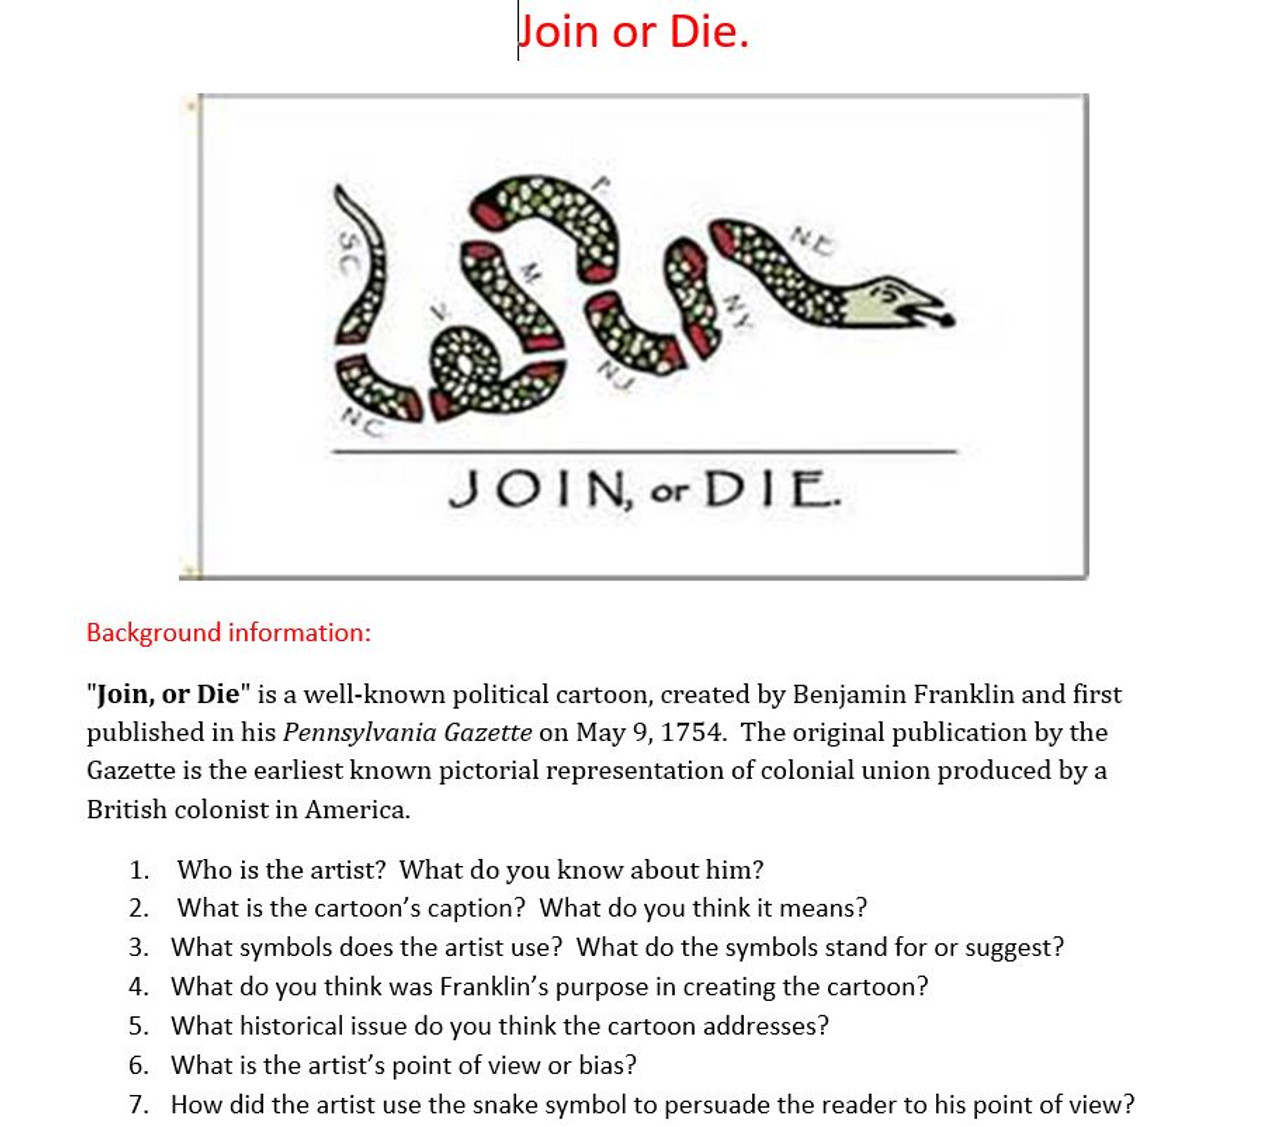 medium resolution of French and Indian War: American Revolution: Join or Die Cartoon - Amped Up  Learning